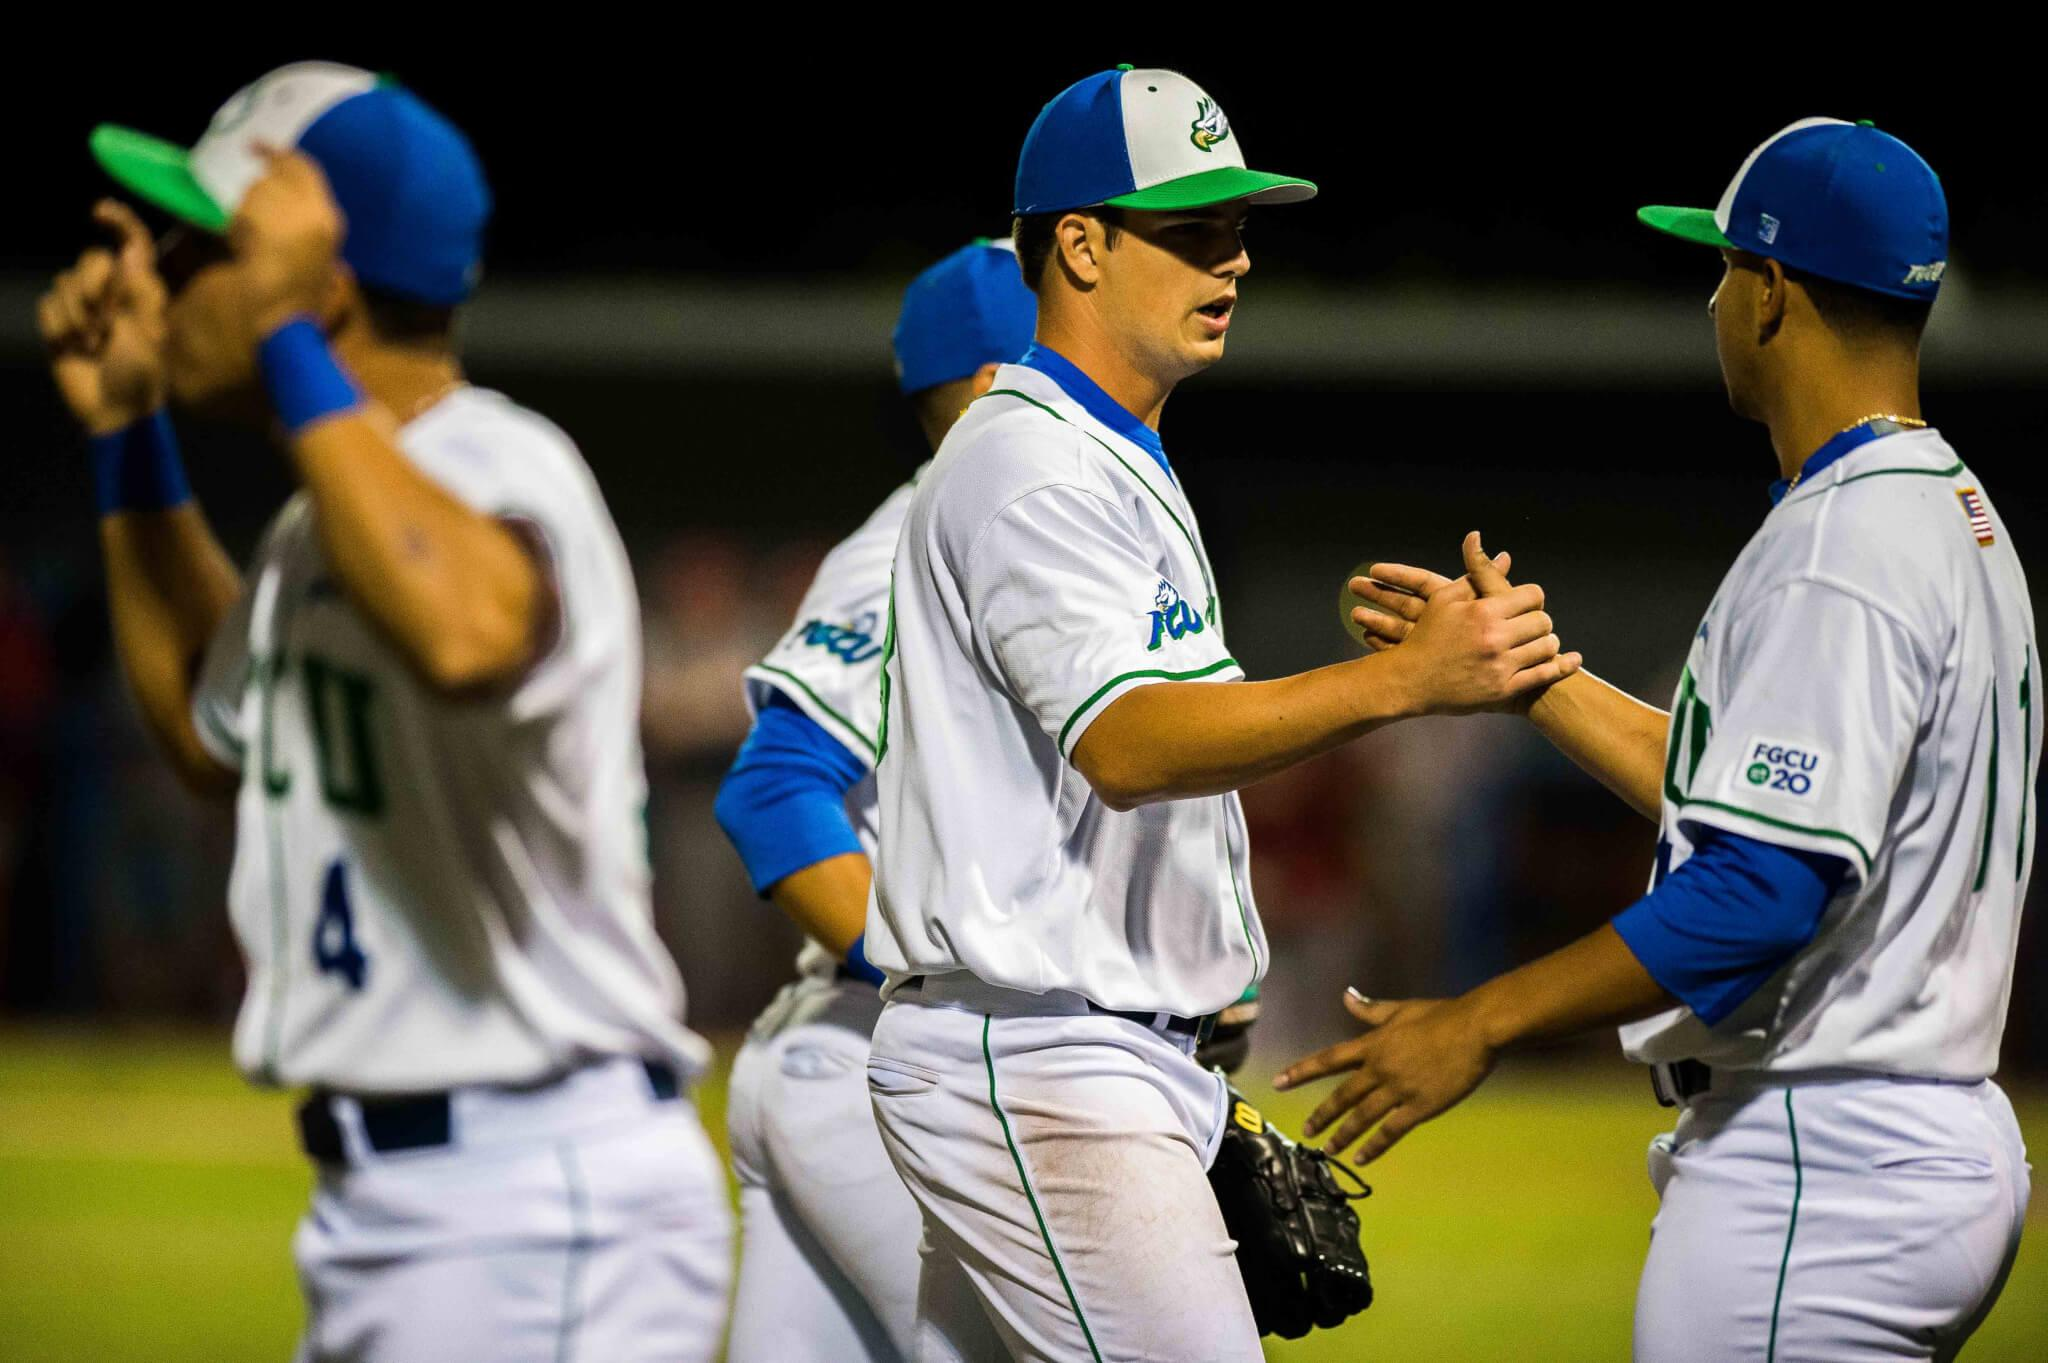 FGCU baseball scores a combined 22 runs in double header victories over Sacred Heart